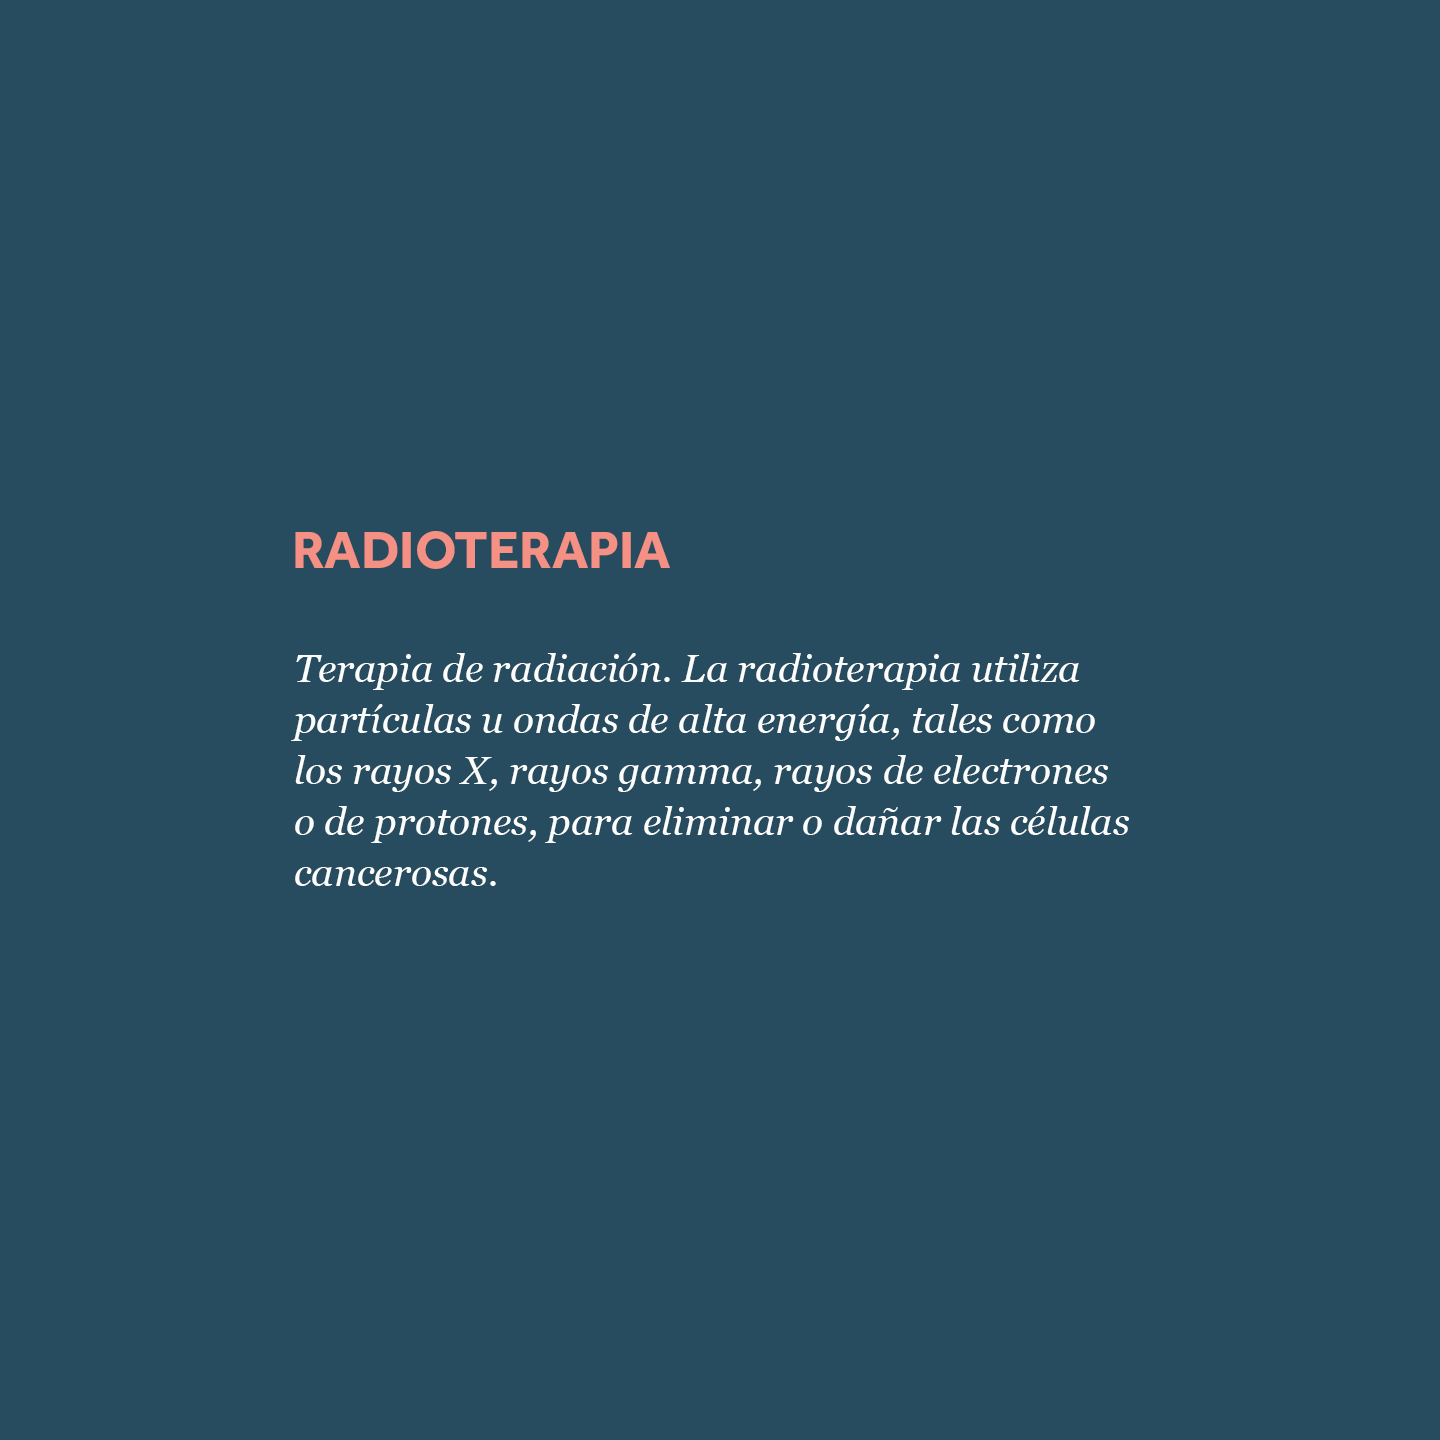 radioterapia-omar-onco